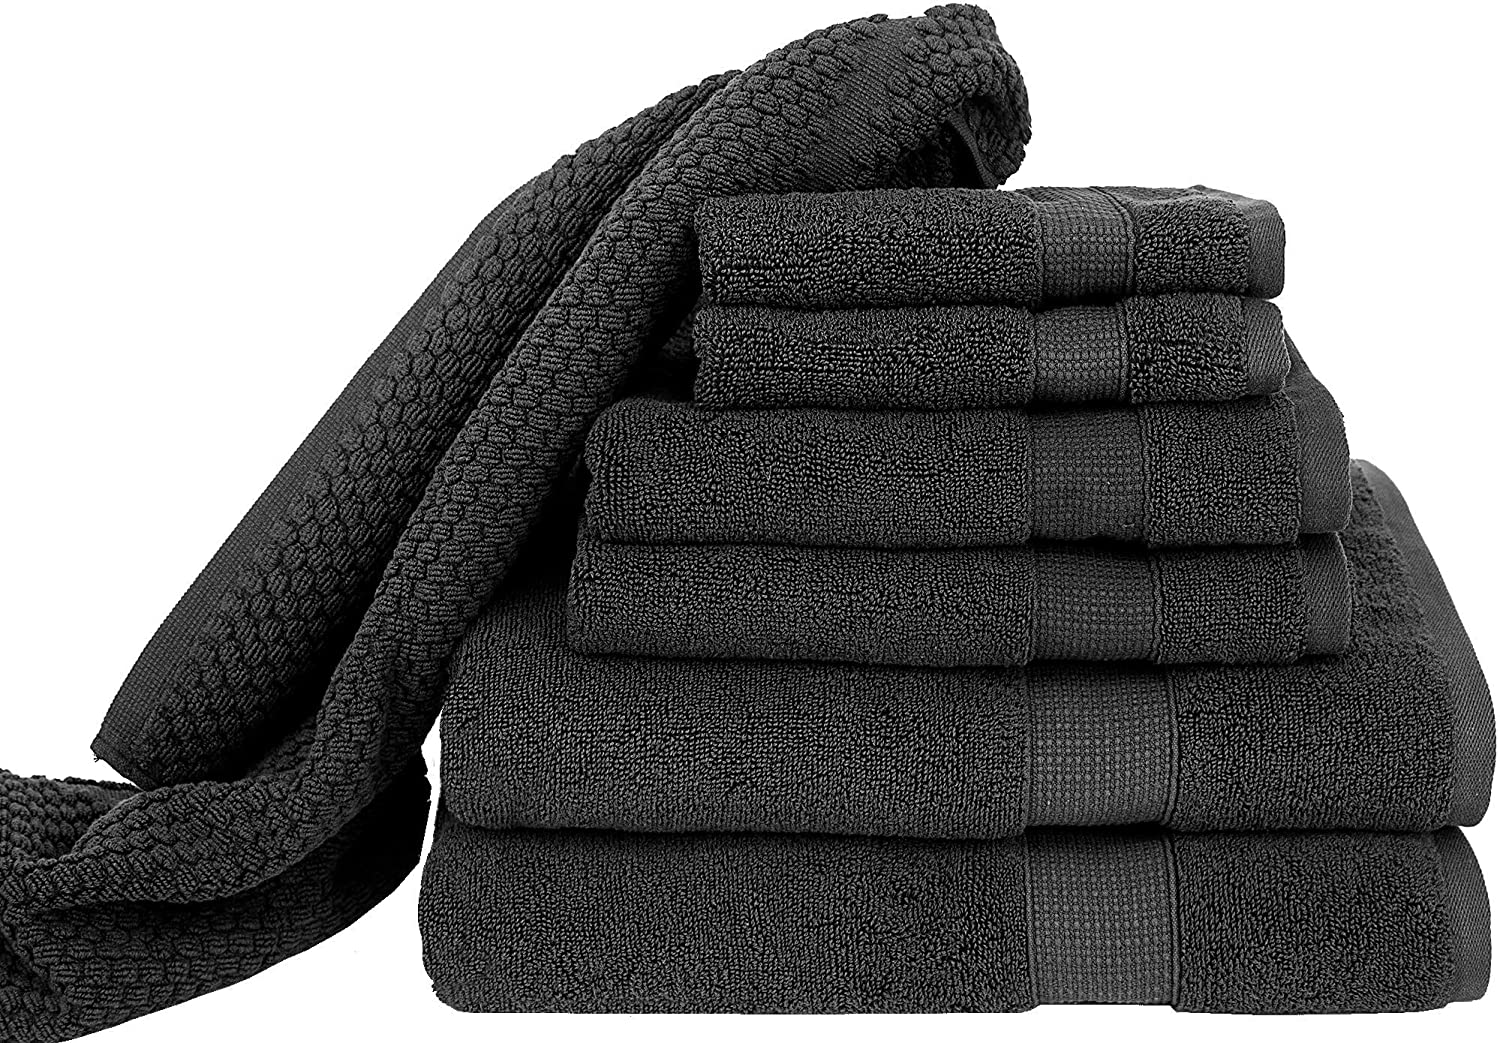 Blake Deluxe 7 Piece Bath Towel and Bath Mat Set - Densely Woven Premium Ultra Soft, High Absorbency Combed Cotton - Luxury Spa Bath Towels - 700 GSM (Dark Grey)